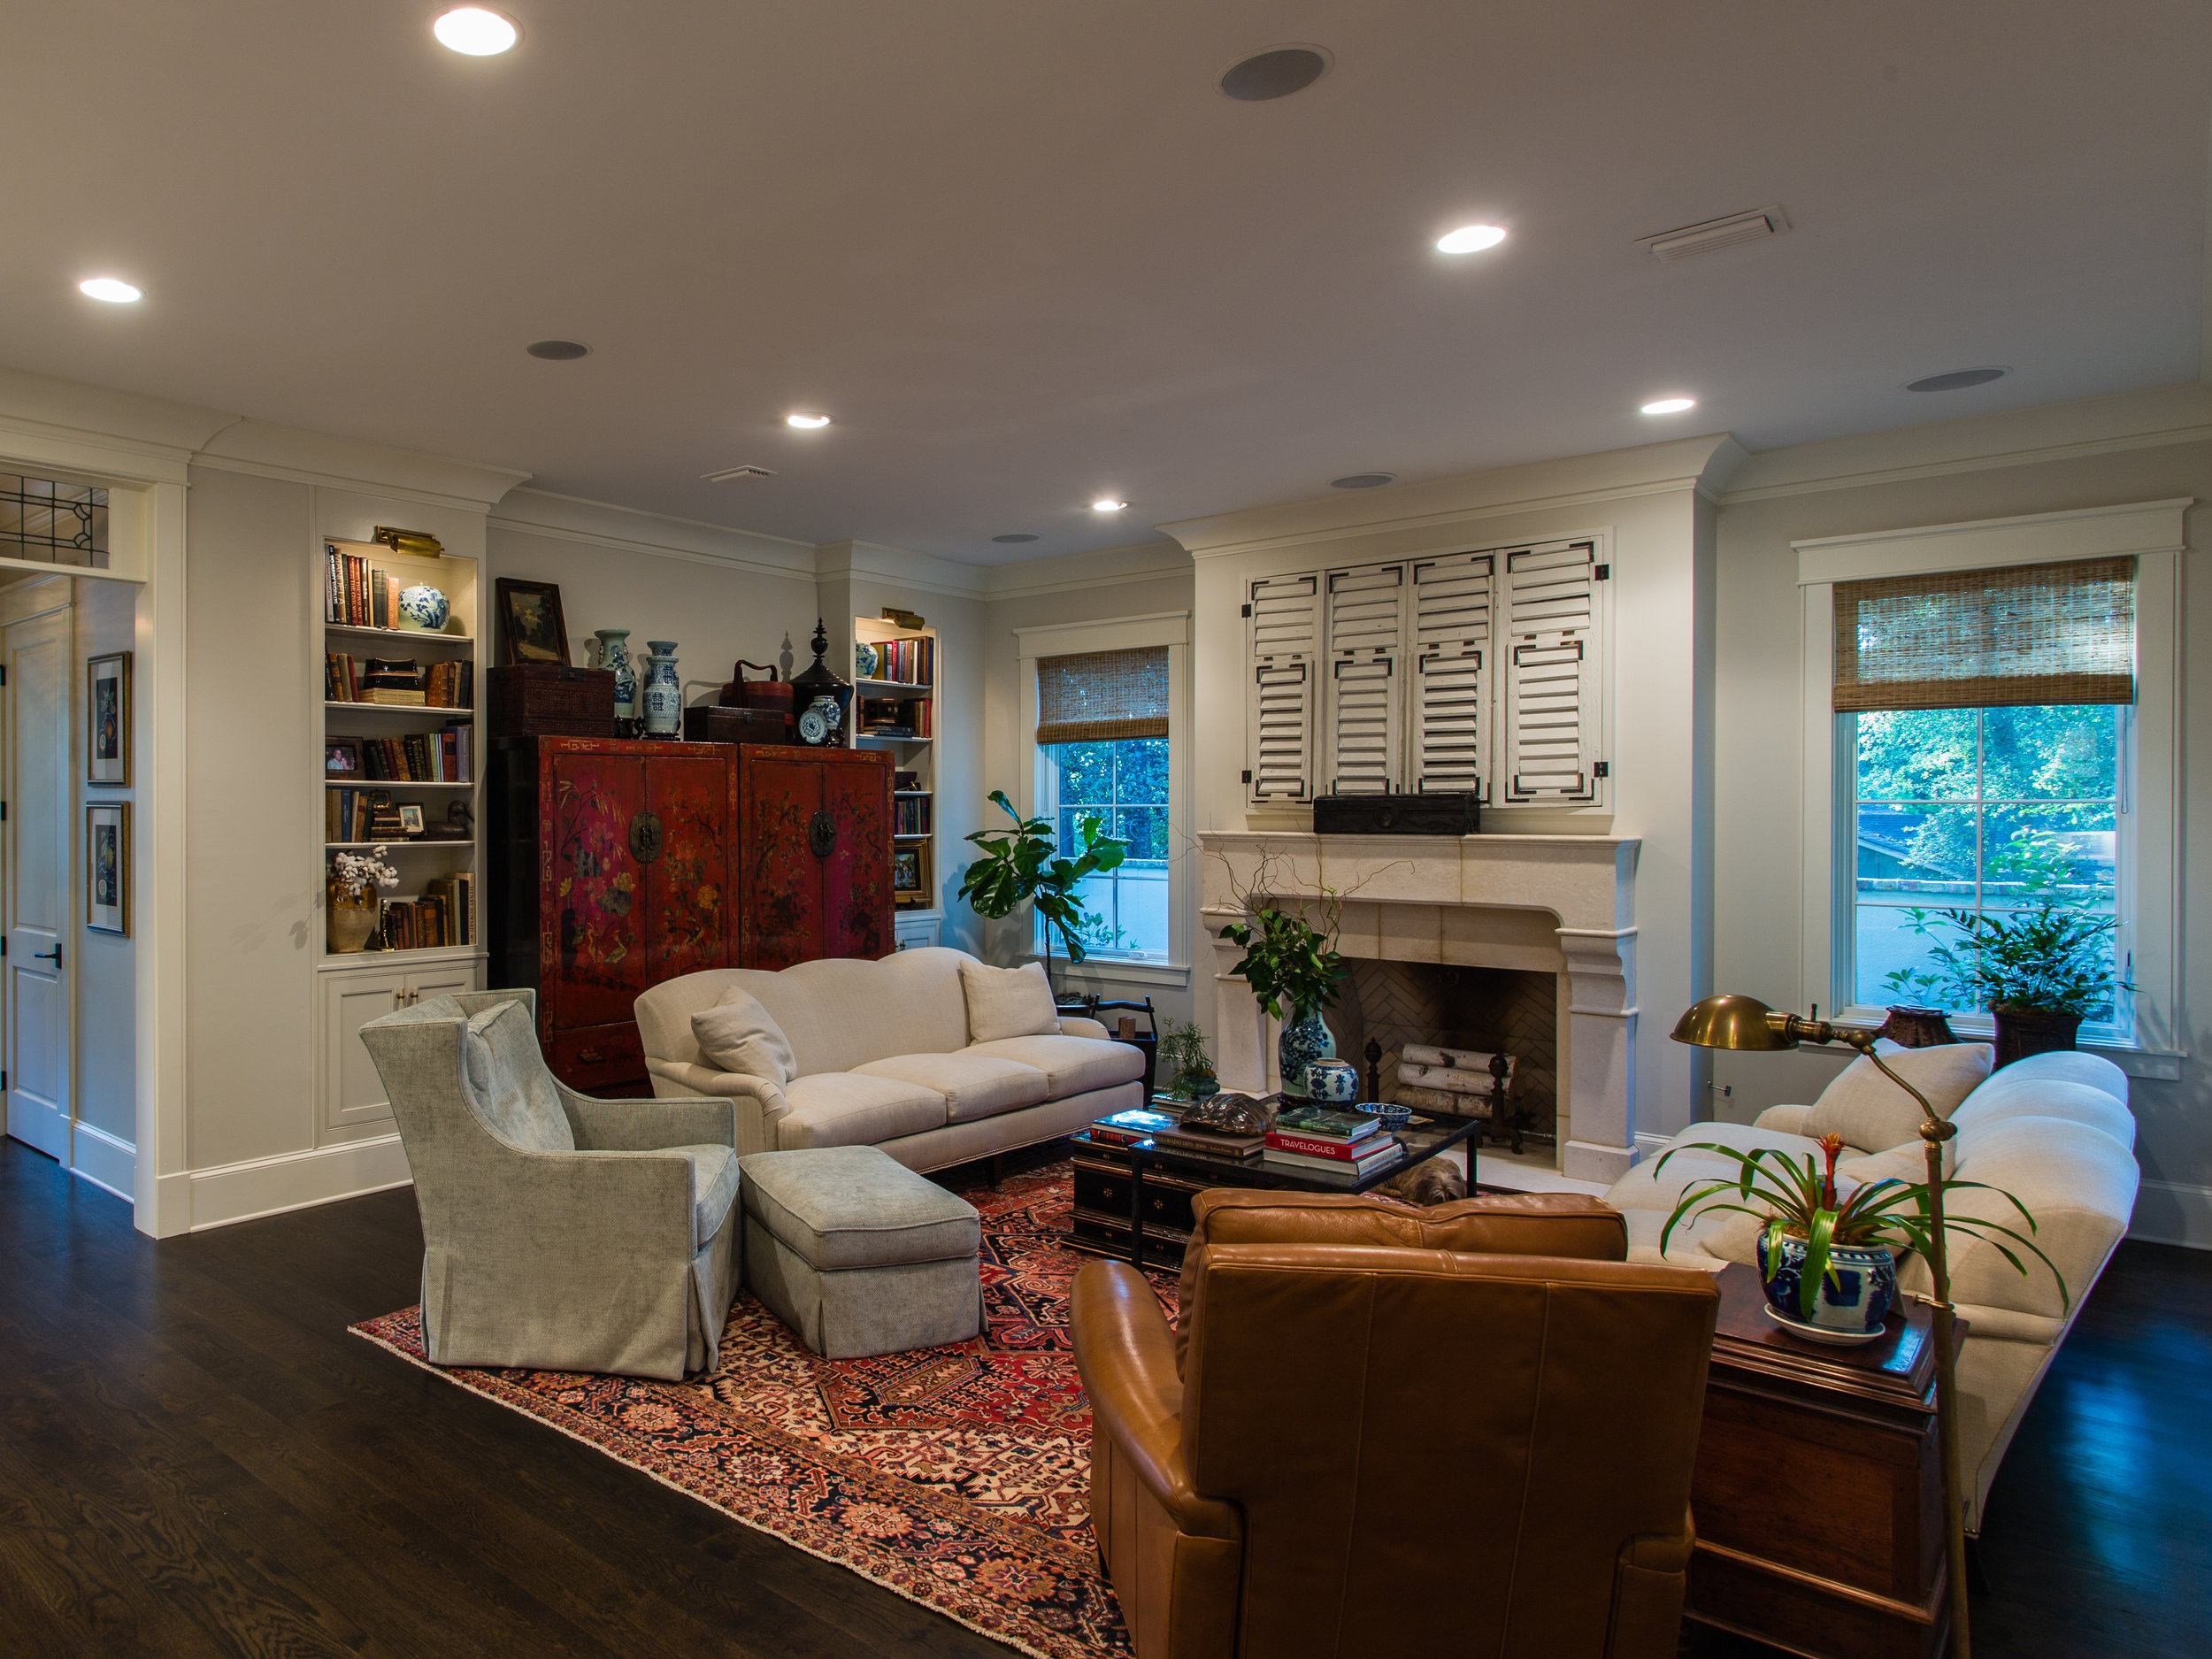 16 06 28 Lesuer, Mendi _ Laurie - Ted Miles Photography Interior (120 of 250).jpg